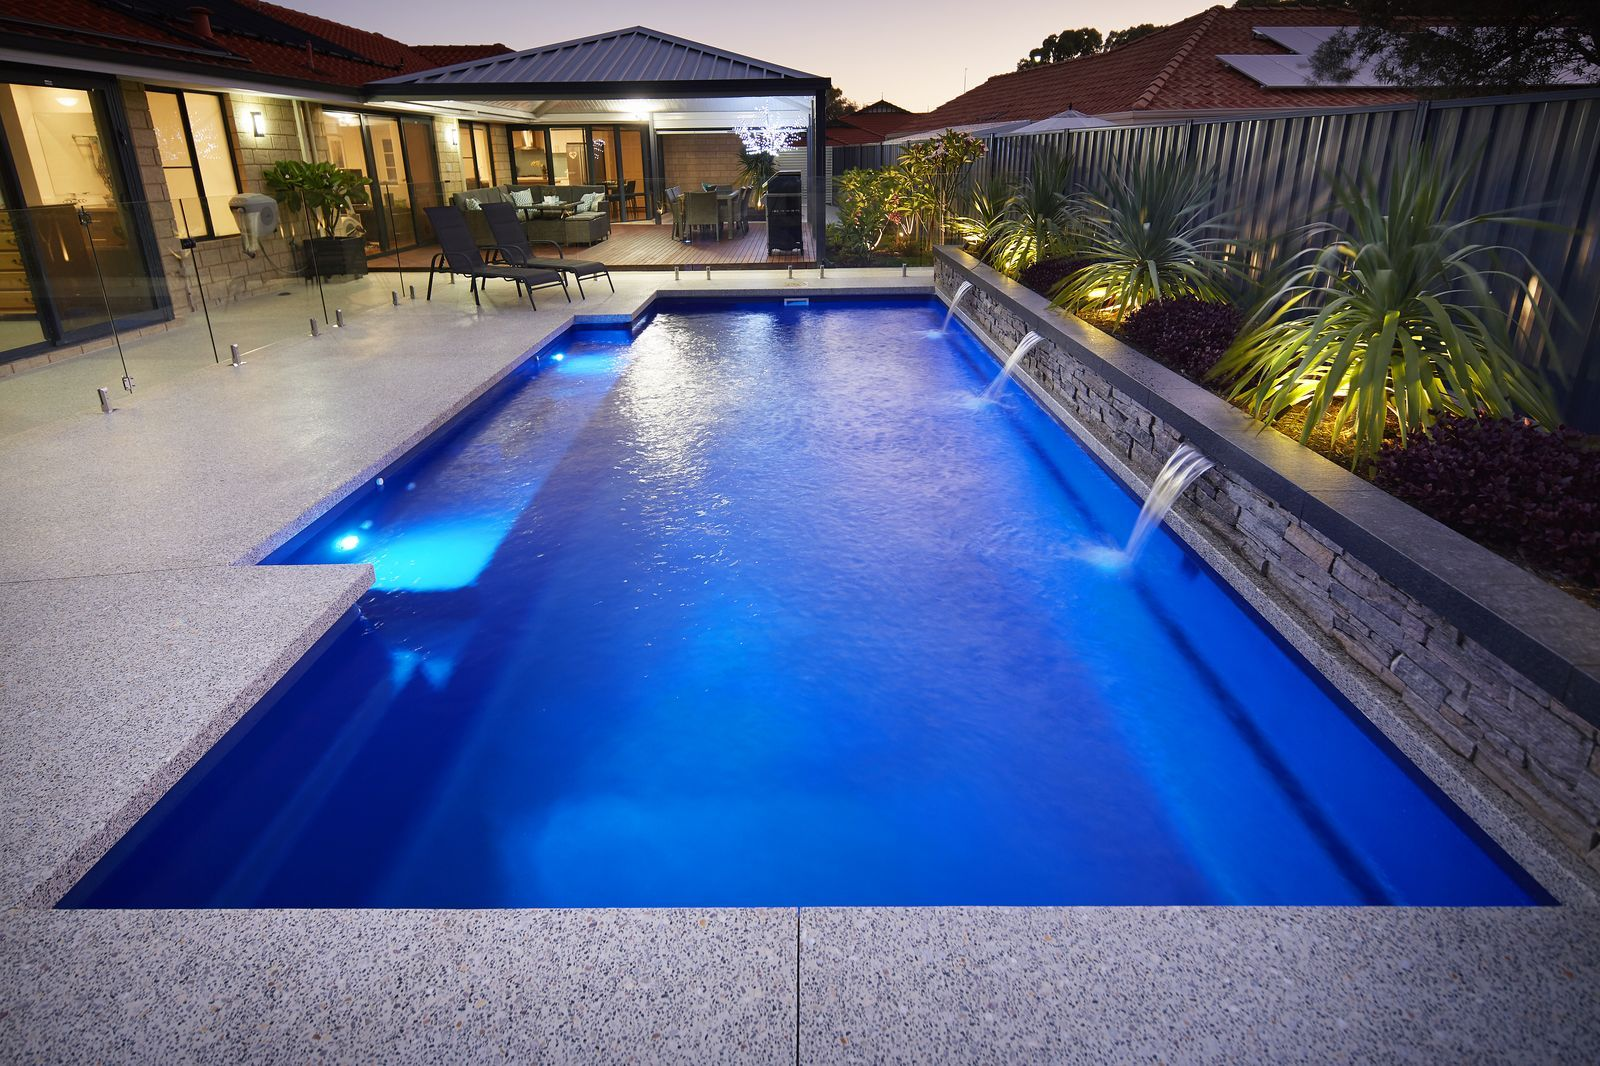 Decorative Concrete Pool Surrounds Options Add Value With Liquid Limestone And Exposed Aggregate Floor Swimming Pool Landscaping Concrete Pool Pool Renovation